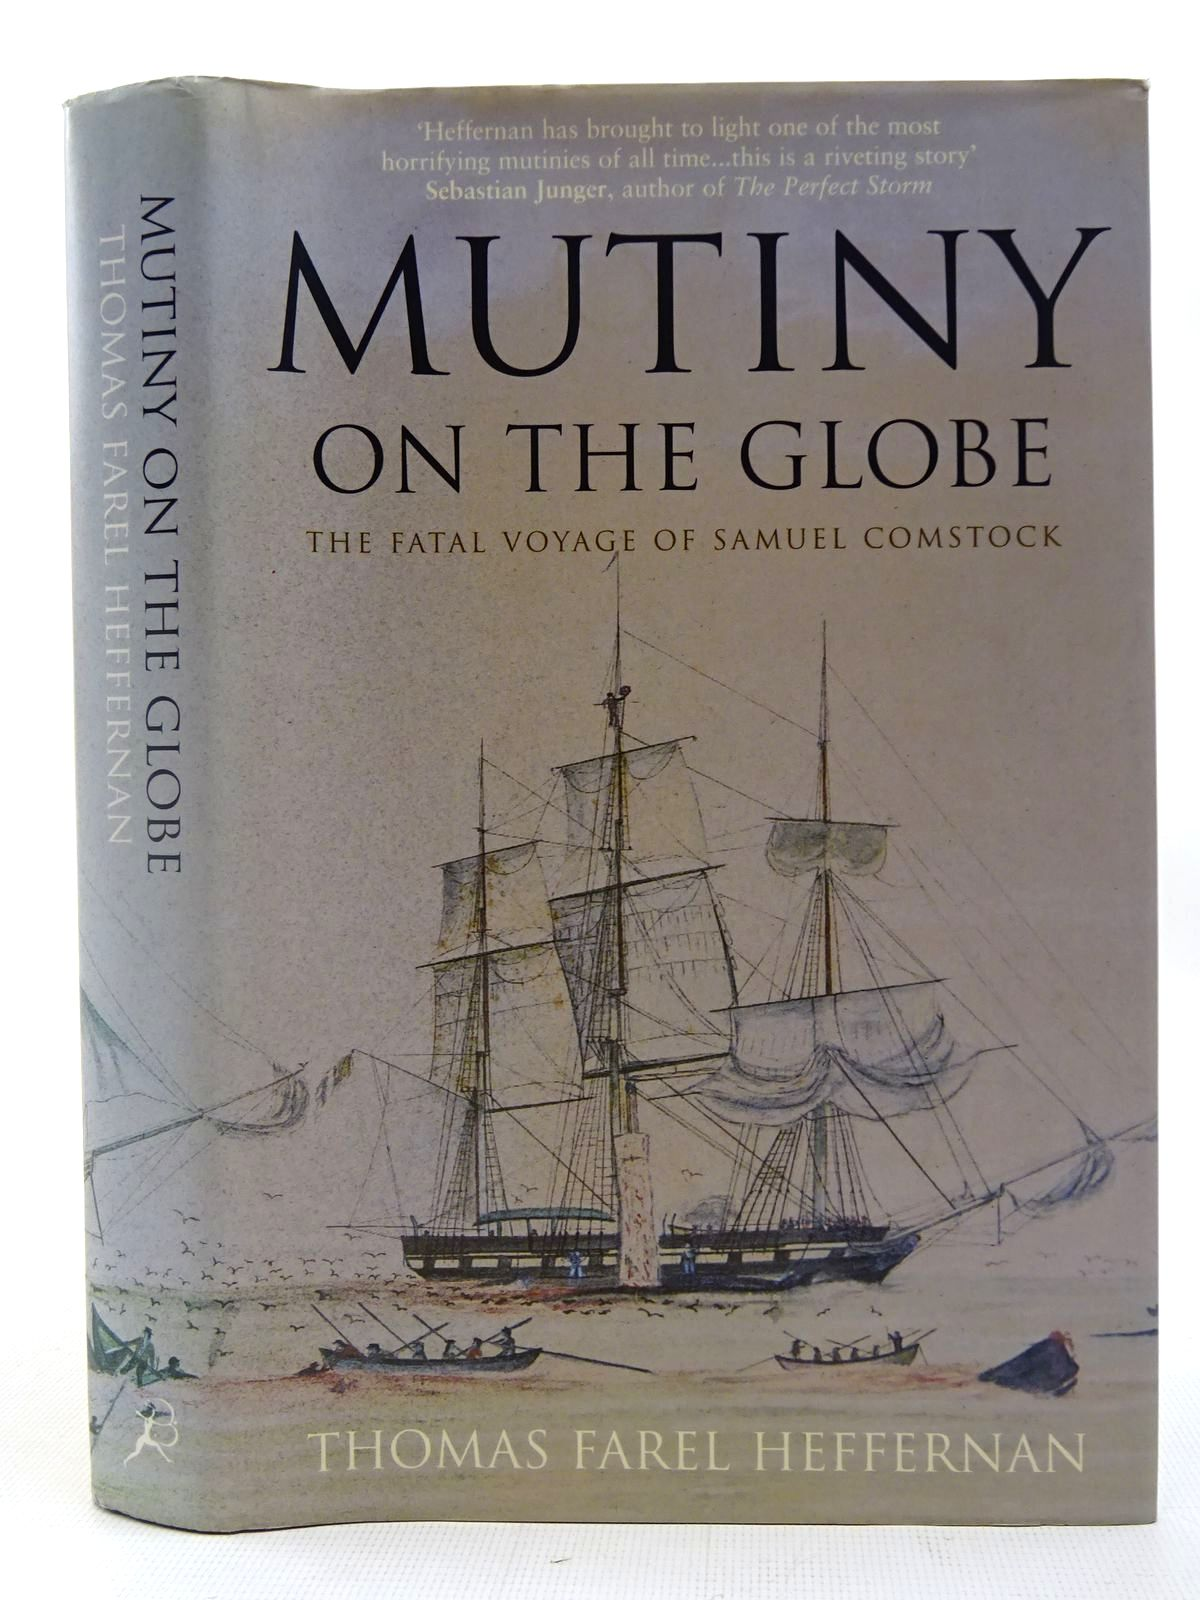 Photo of MUTINY ON THE GLOBE THE FATAL VOYAGE OF SAMUEL COMSTOCK written by Heffernan, Thomas Farel published by Bloomsbury Publishing Plc (STOCK CODE: 2127034)  for sale by Stella & Rose's Books